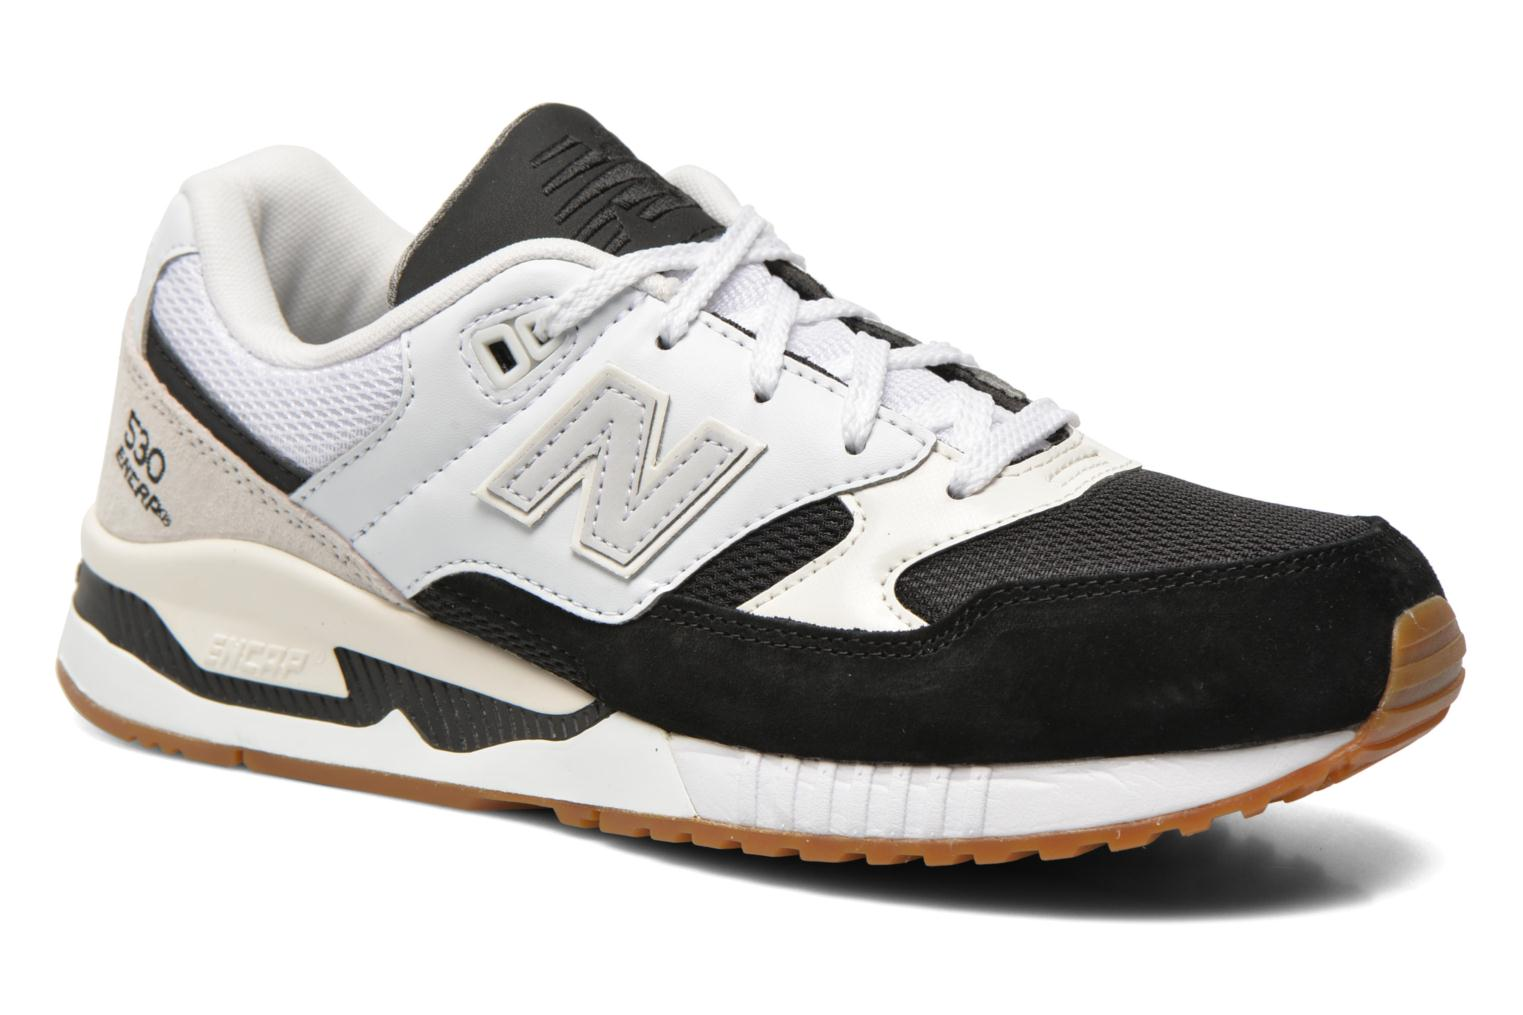 Sneakers M530 by New Balance